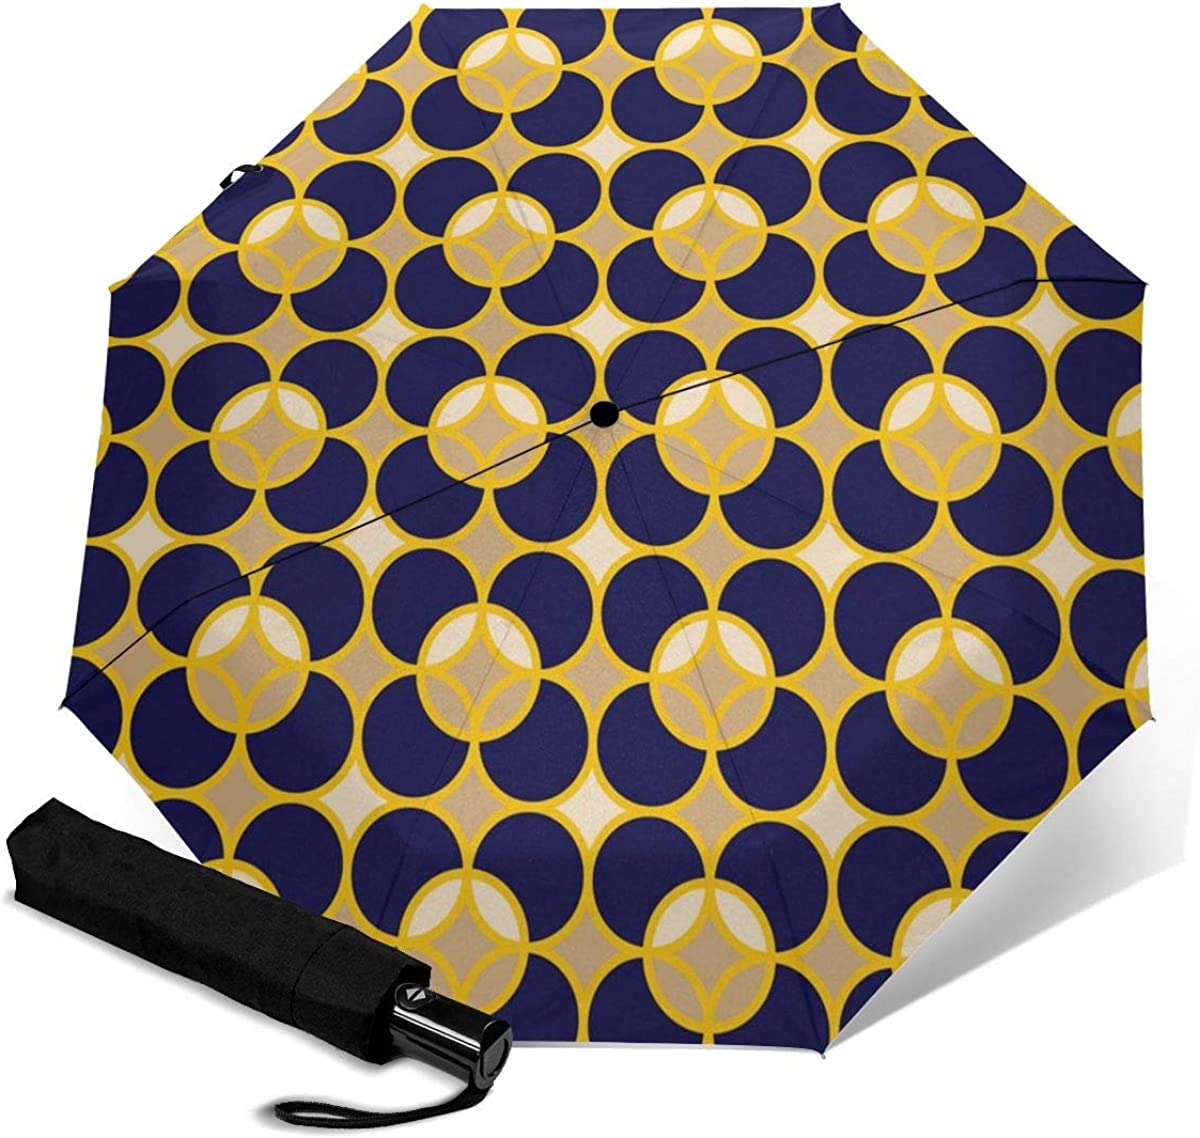 Modern Professional Geometric Seamless Compact Travel Umbrella Windproof Reinforced Canopy 8 Ribs Umbrella Auto Open And Close Button Personalized